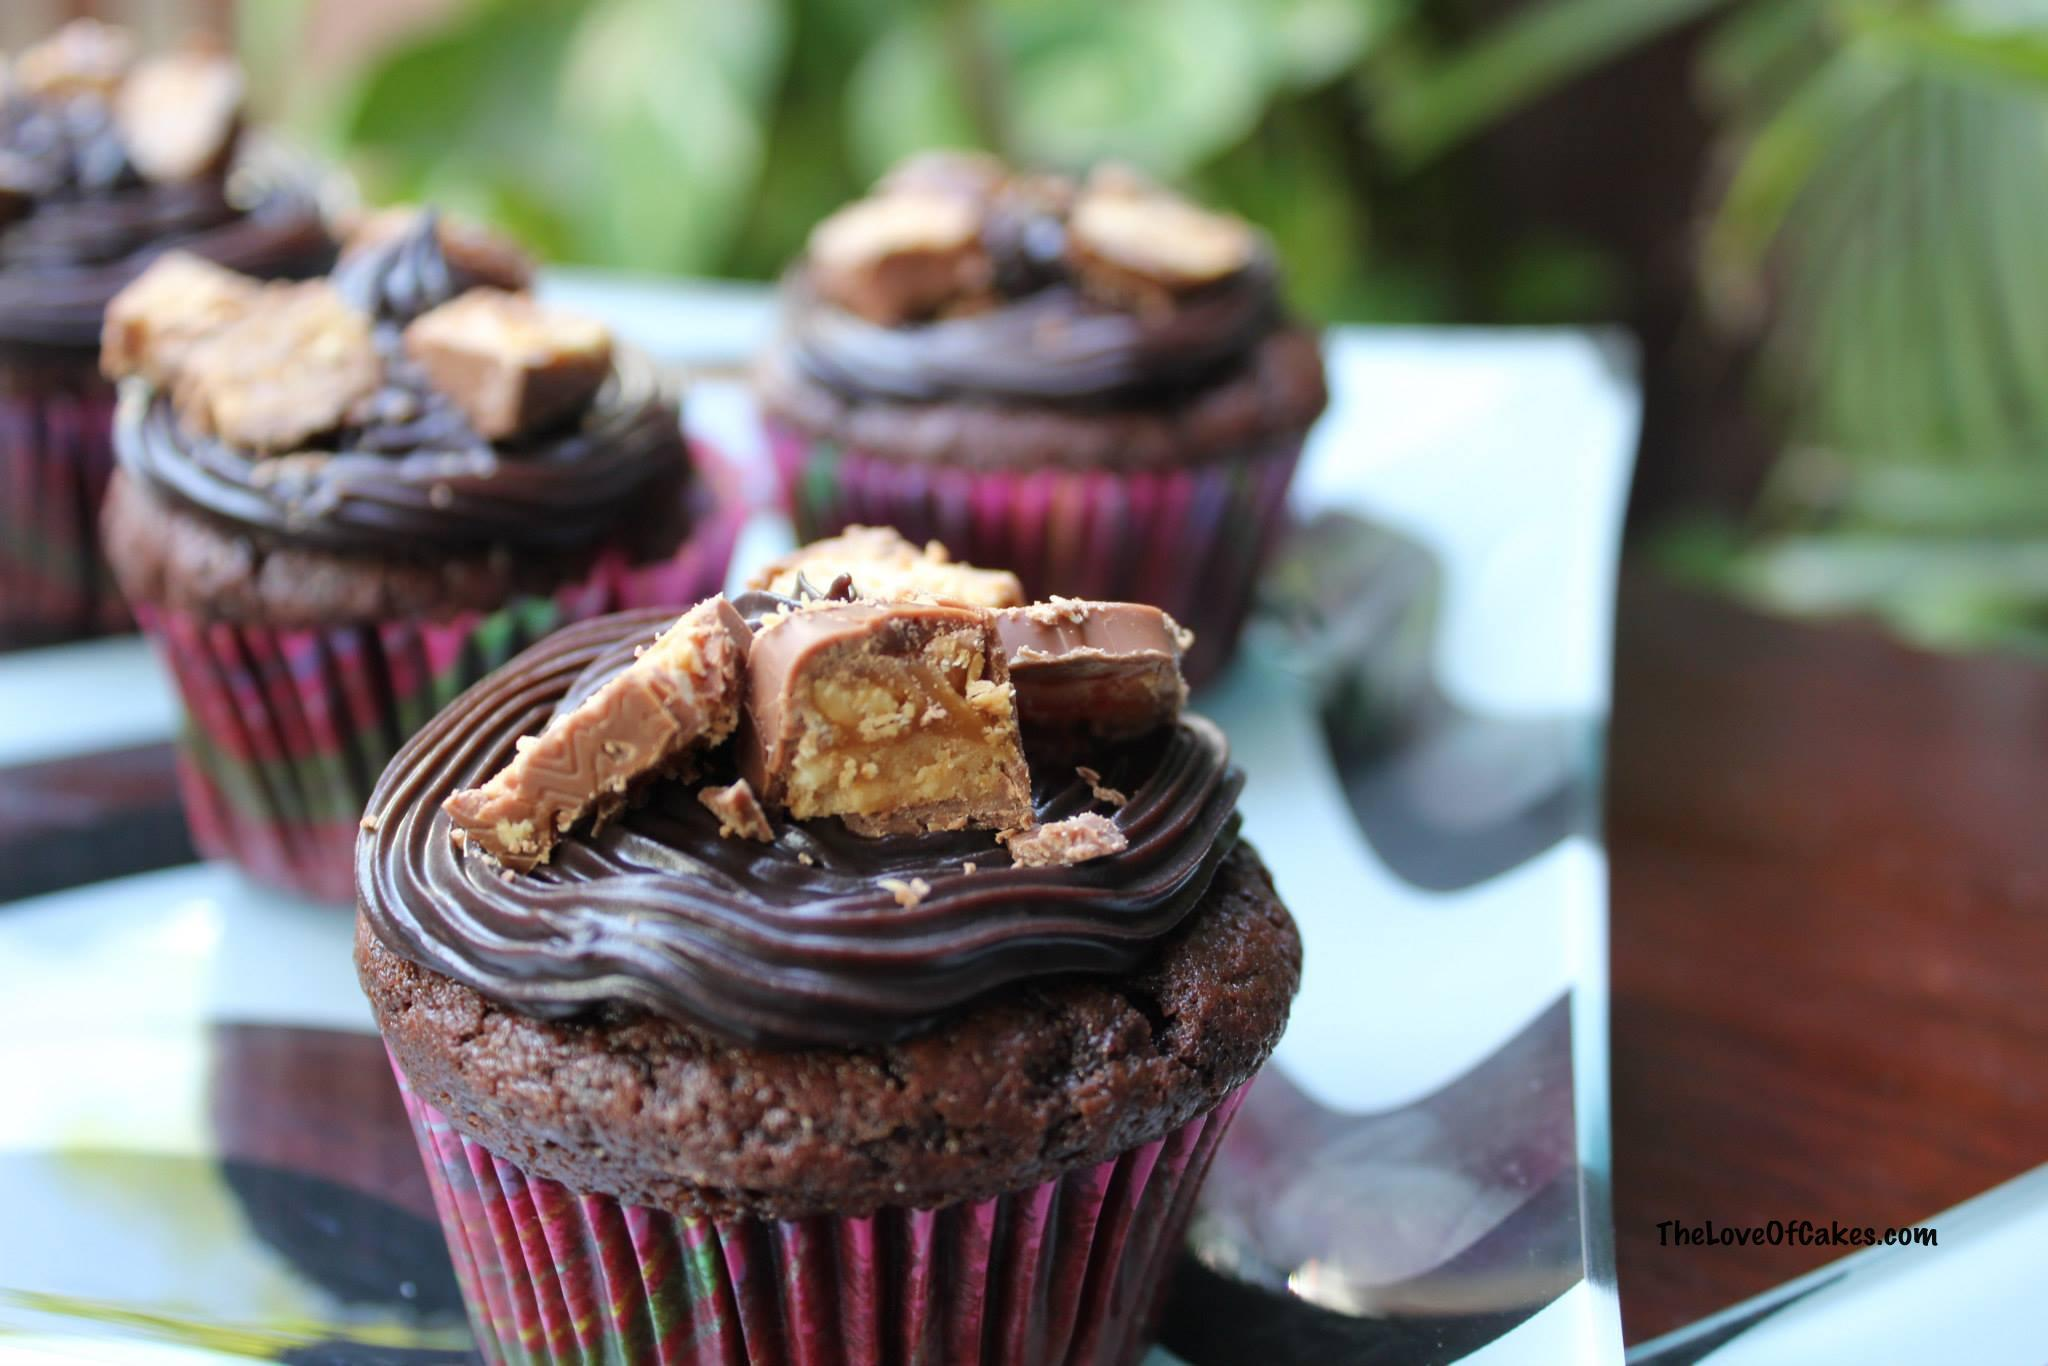 Chocolate cupcakes with peanut butter centers and chocolate icing